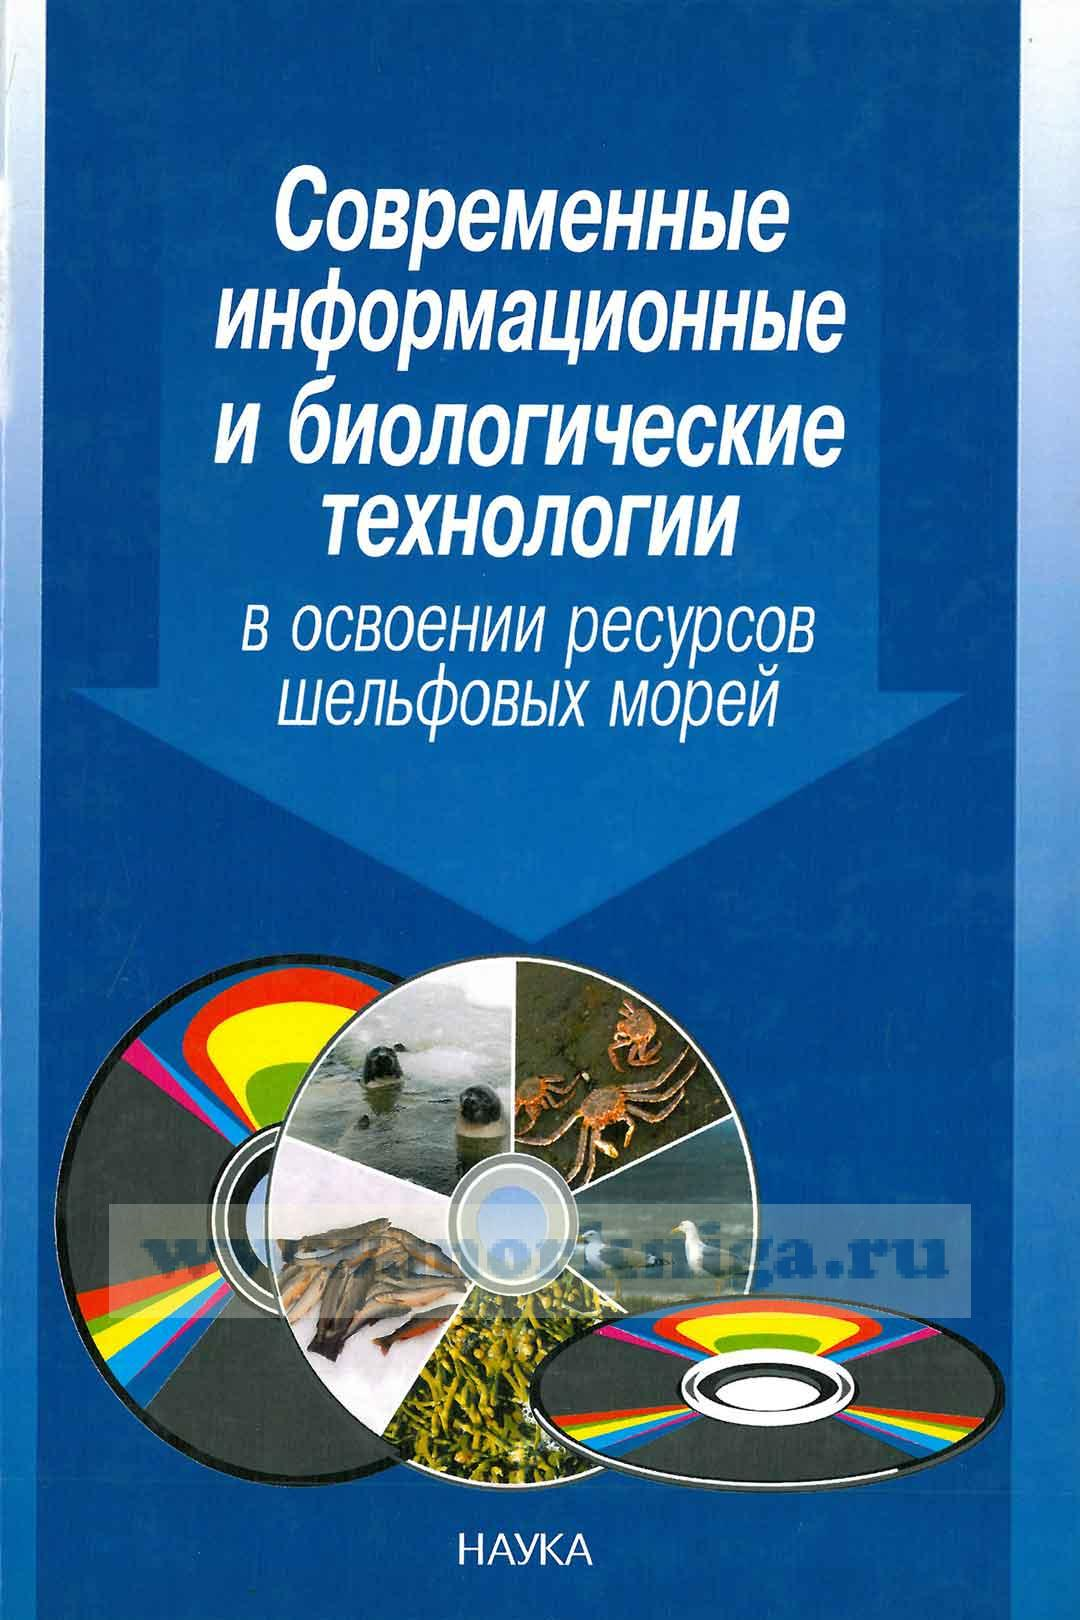 Yachtmaster for Sail and Power. 4rd edition